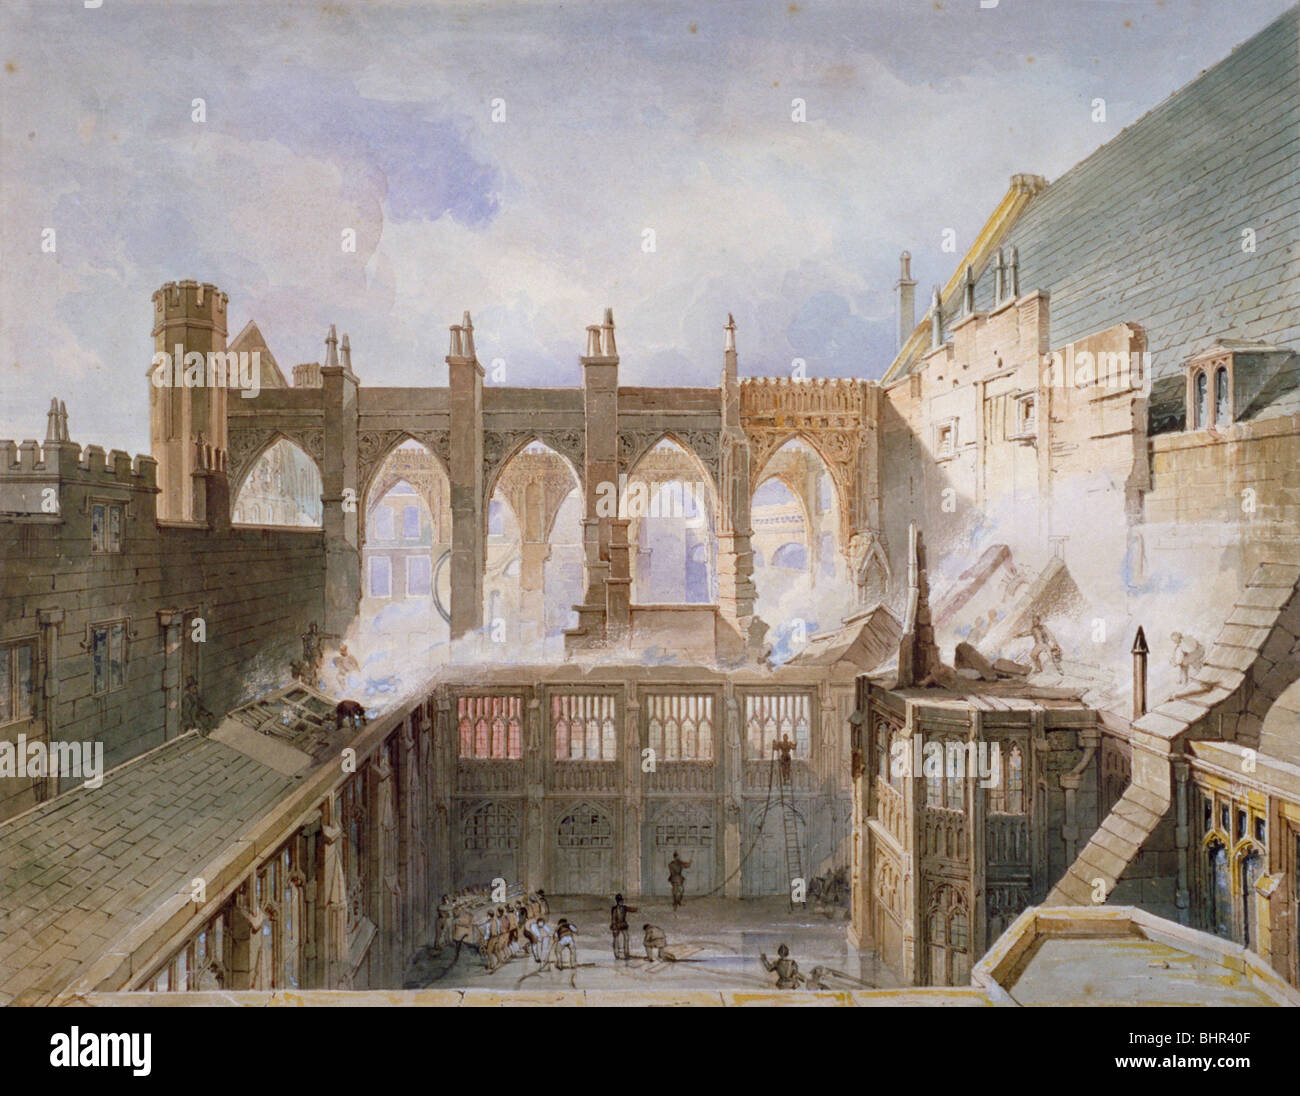 View of the destruction of St Stephen's Chapel, Palace of Westminster, London, 1834 Artist: John Taylor - Stock Image